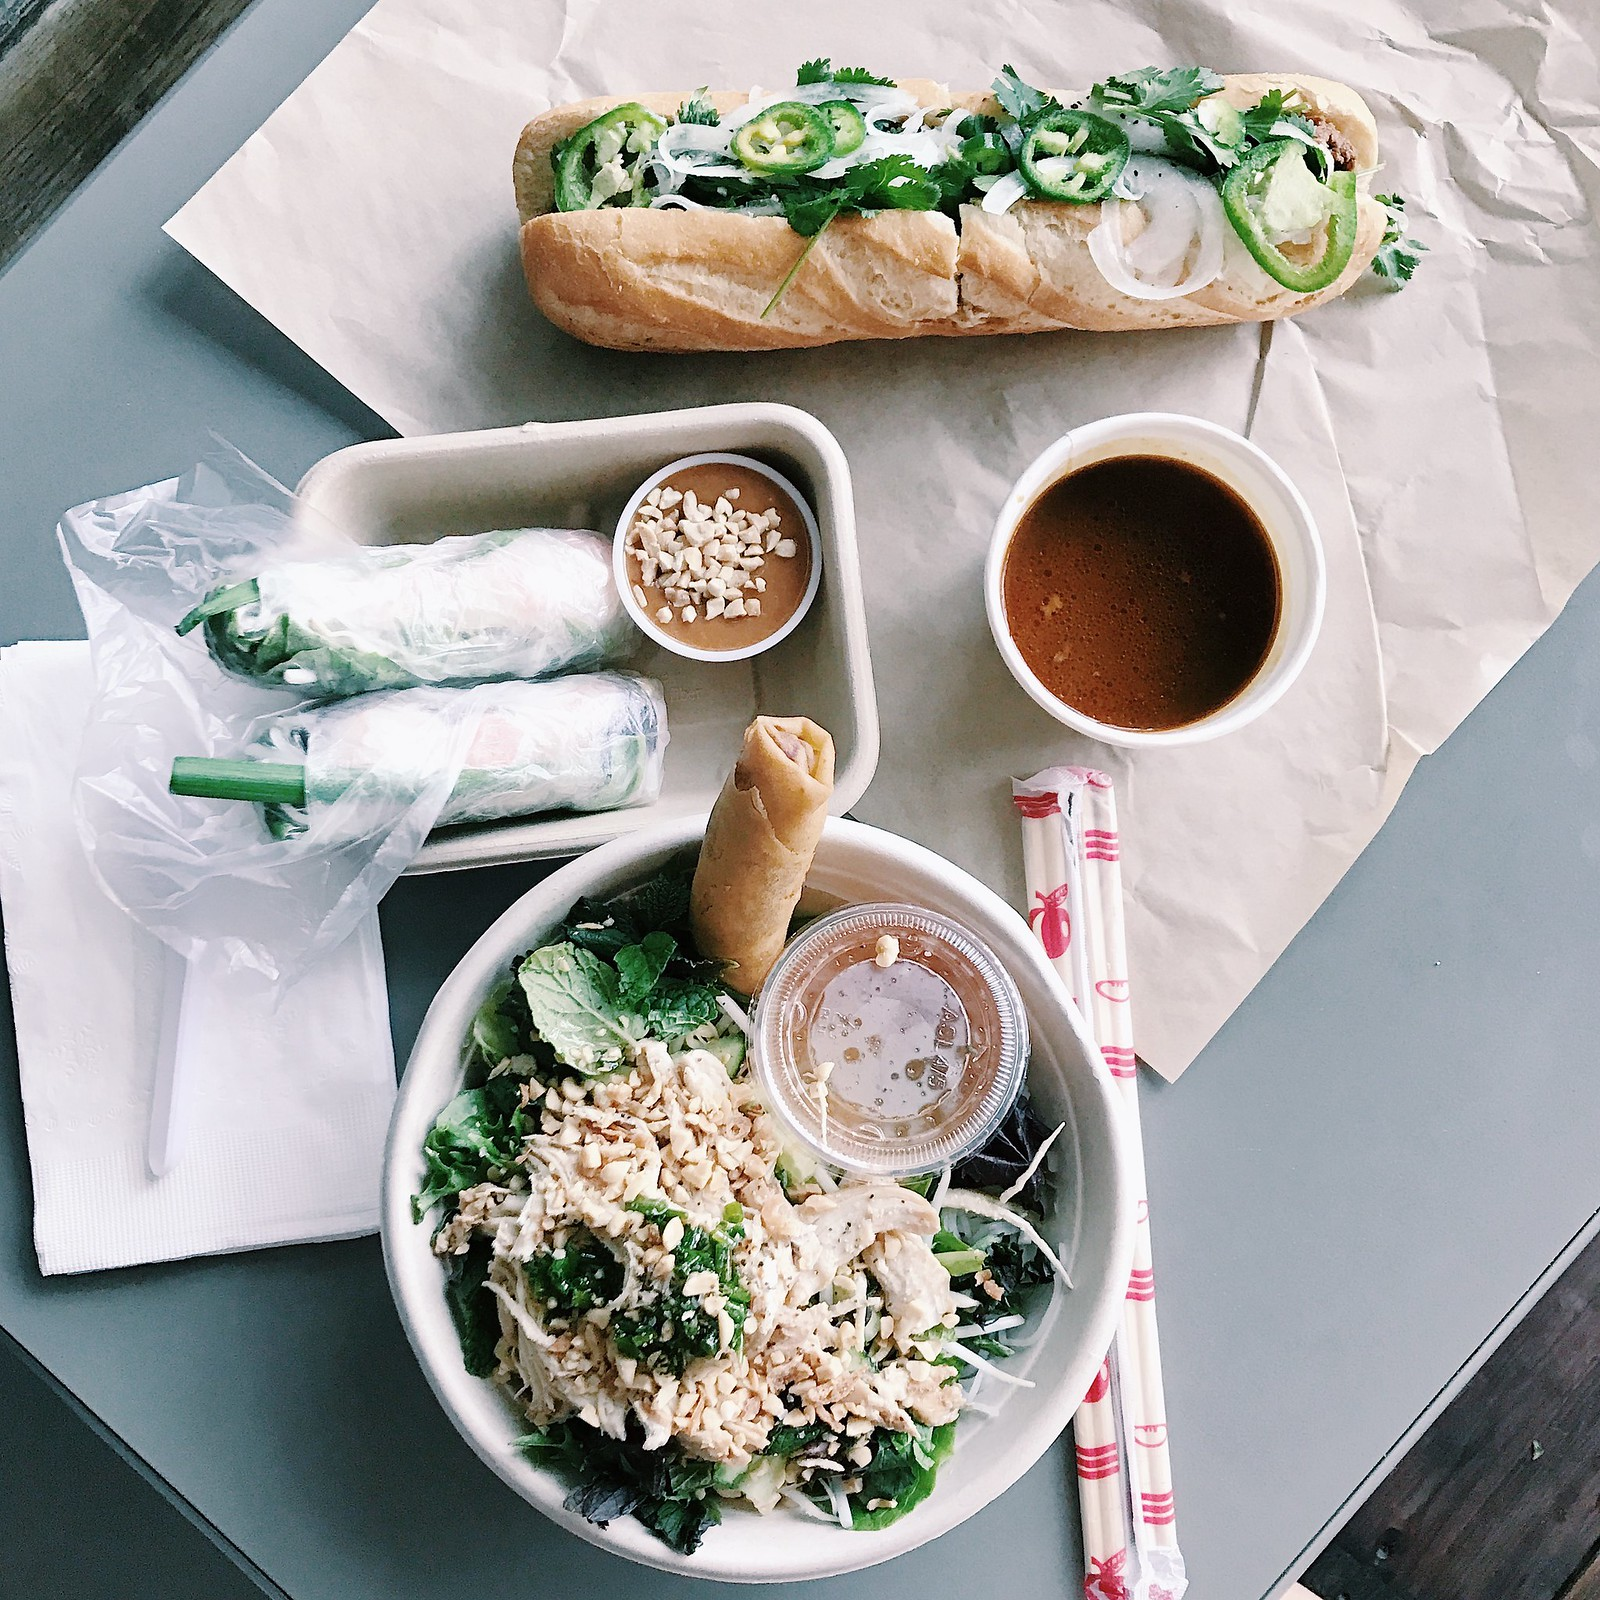 eastborough-vietnamese-flatlay-foodie-dinela-dineoc-thecamp-clothestoyouuu-elizabeeetht